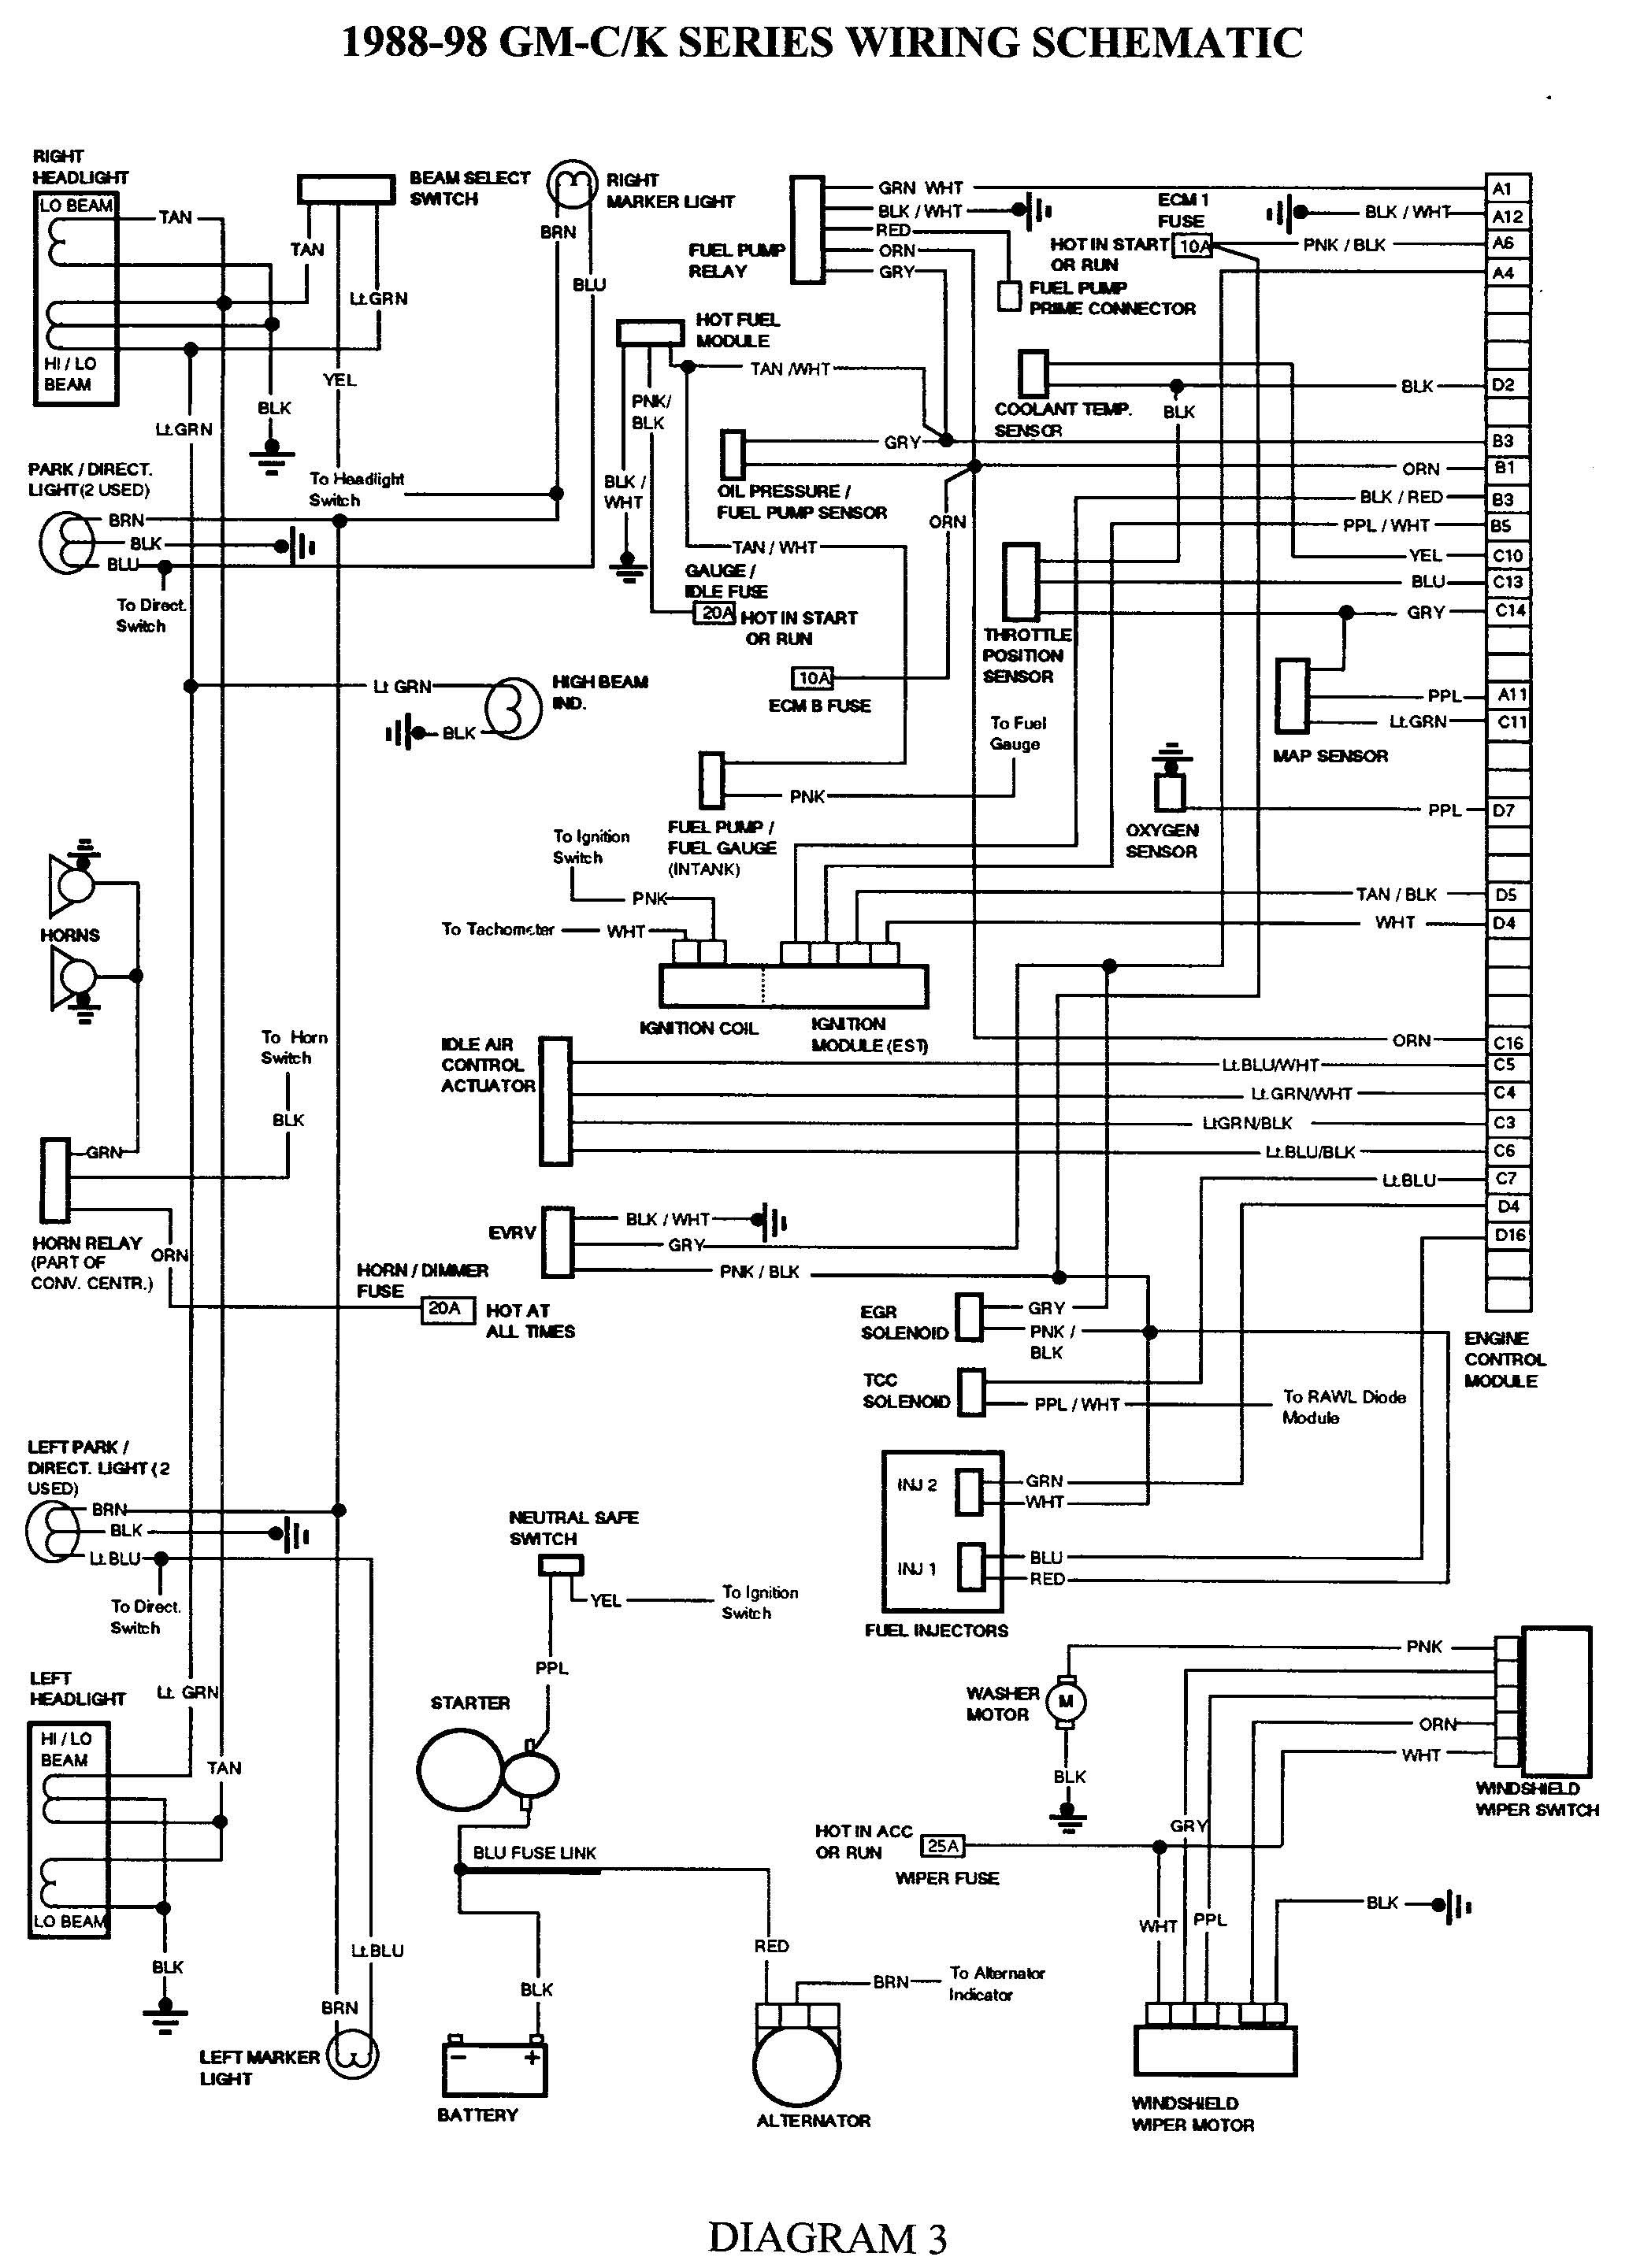 chevy c5500 wiring wiring diagram 500 1992 gmc topkick wiring-diagram chevy kodiak wiring diagram #8